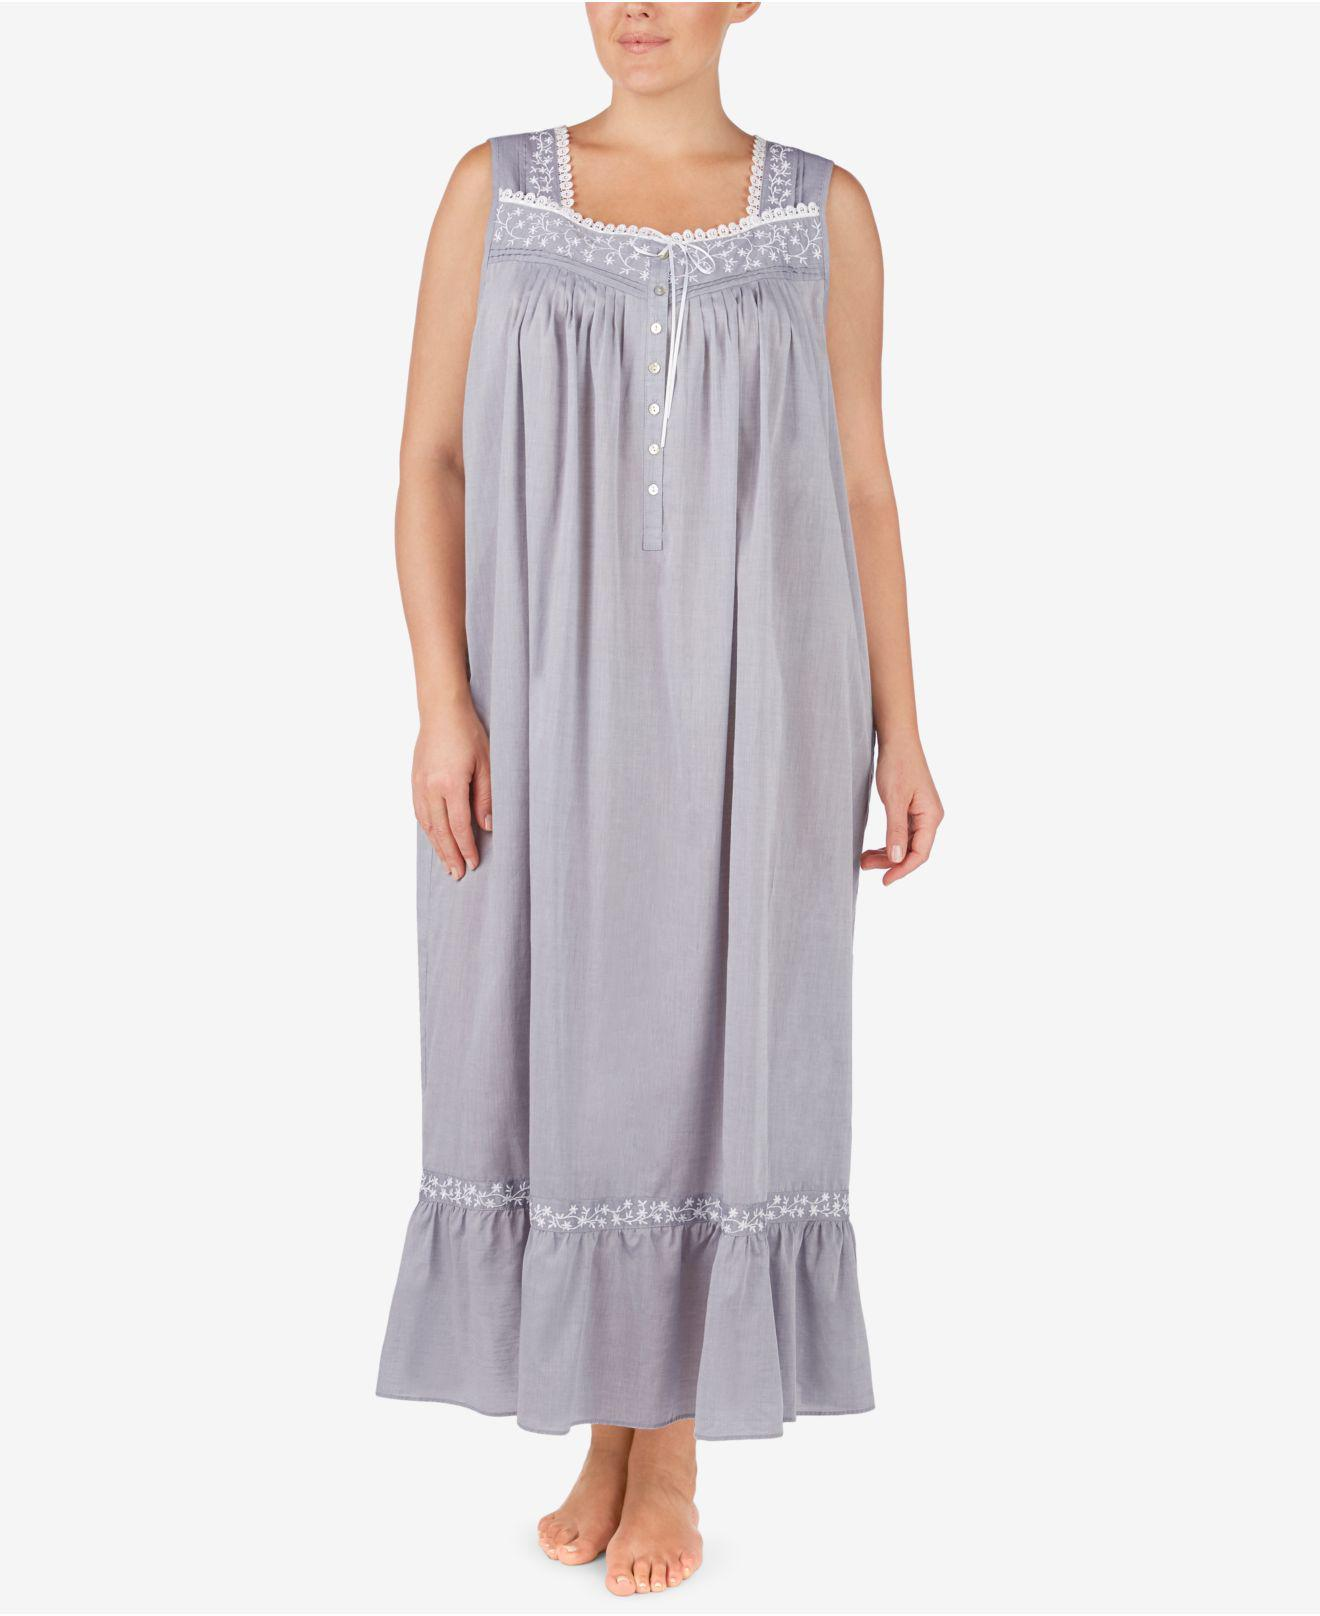 45c2cac8bc Lyst - Eileen West Plus Size Cotton Chambray Ballet Nightgown in ...